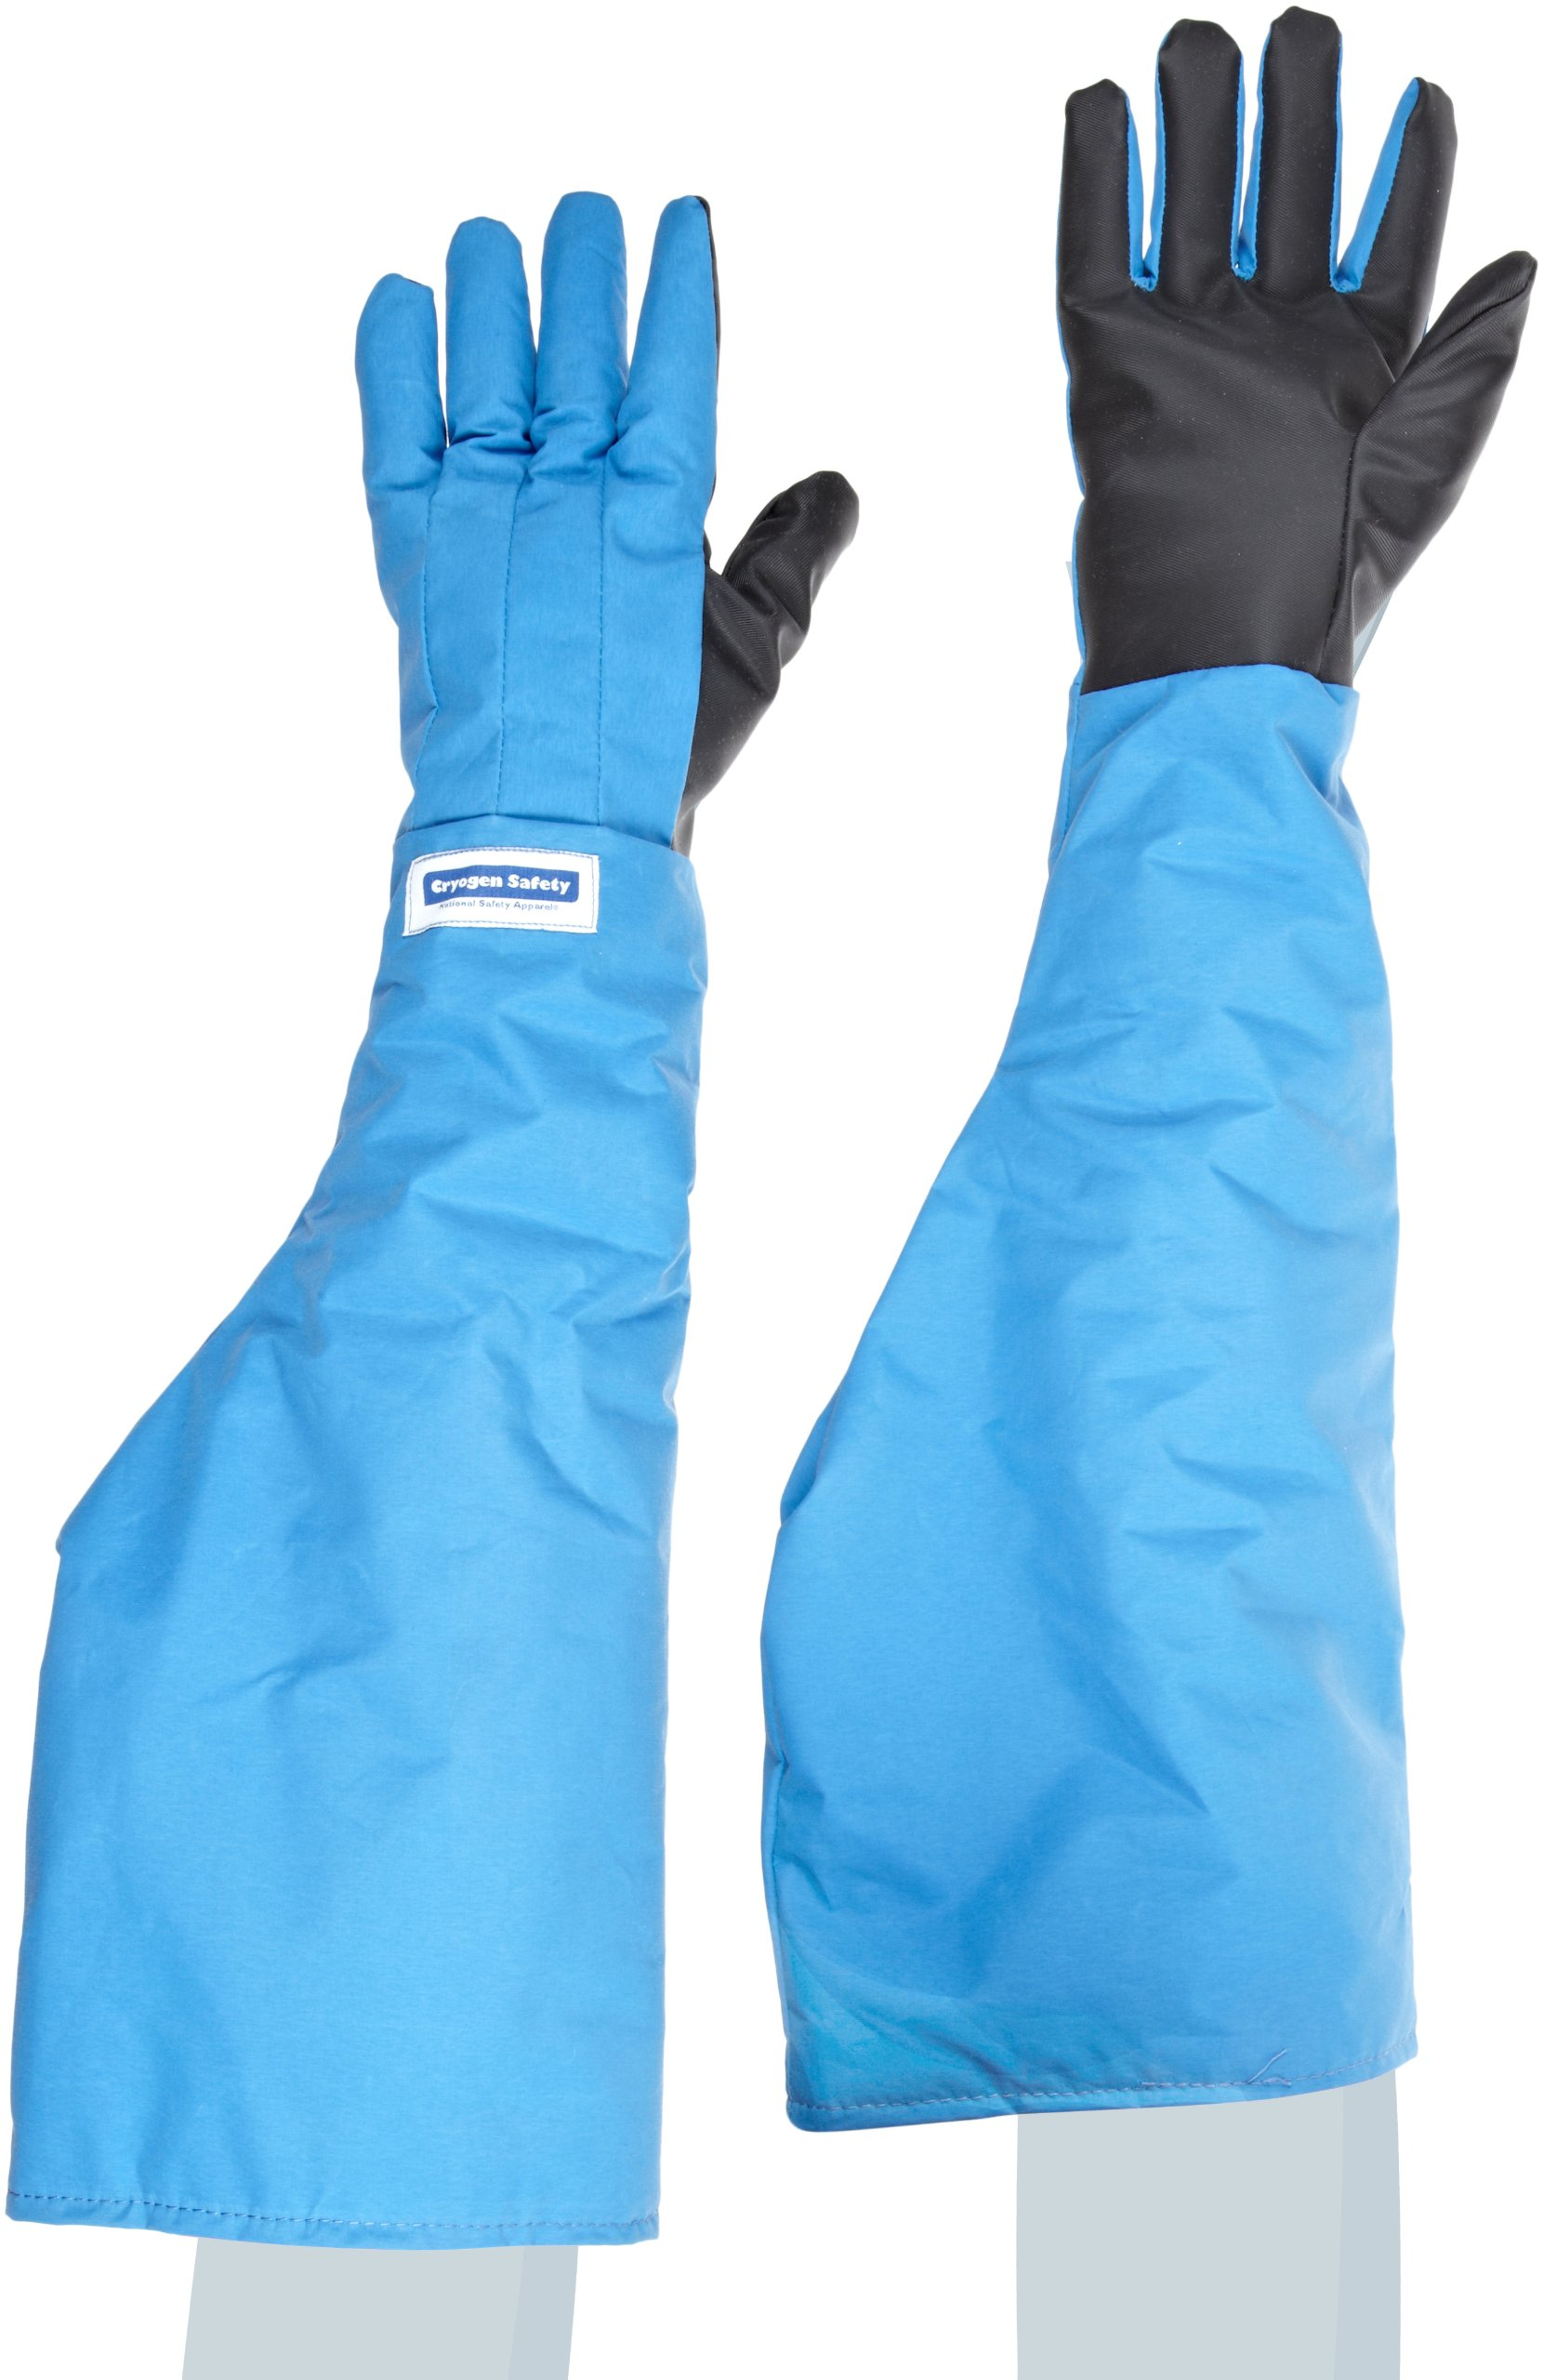 National Safety Apparel G99CRSGPLGSH Nylon Taslan and PTFE Shoulder Waterproof Safety Glove with SaferGrip Palm, Cryogenic, 26'' - 27'' Length, Large, Blue